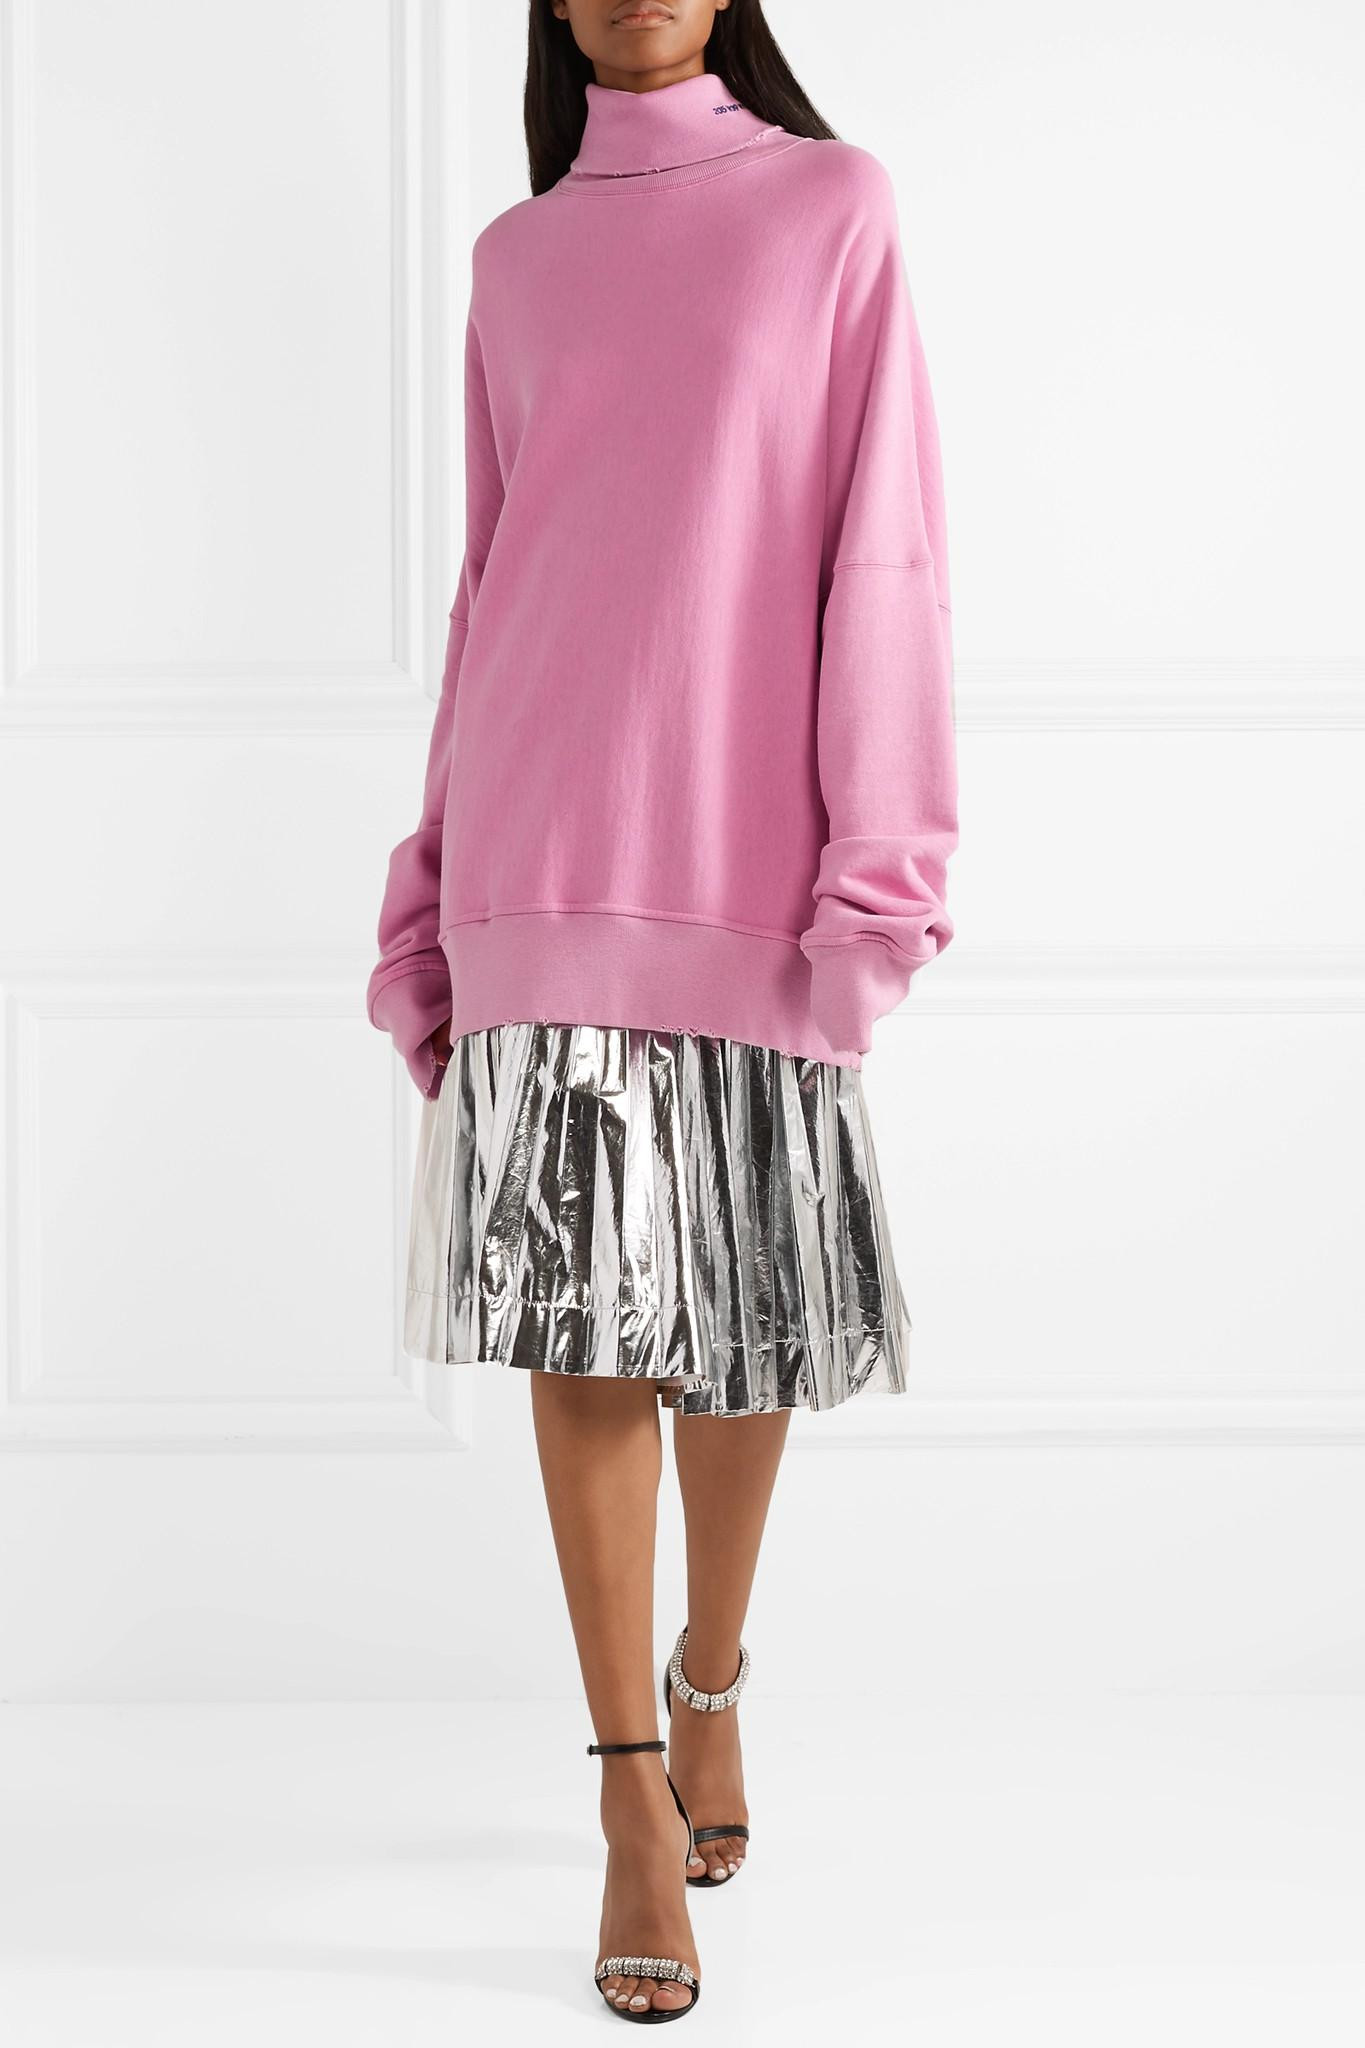 CALVIN KLEIN 205W39NYC - Pink Oversized Embroidered Distressed French  Cotton-terry Turtleneck Sweatshirt - Lyst. View fullscreen 63904a5d6